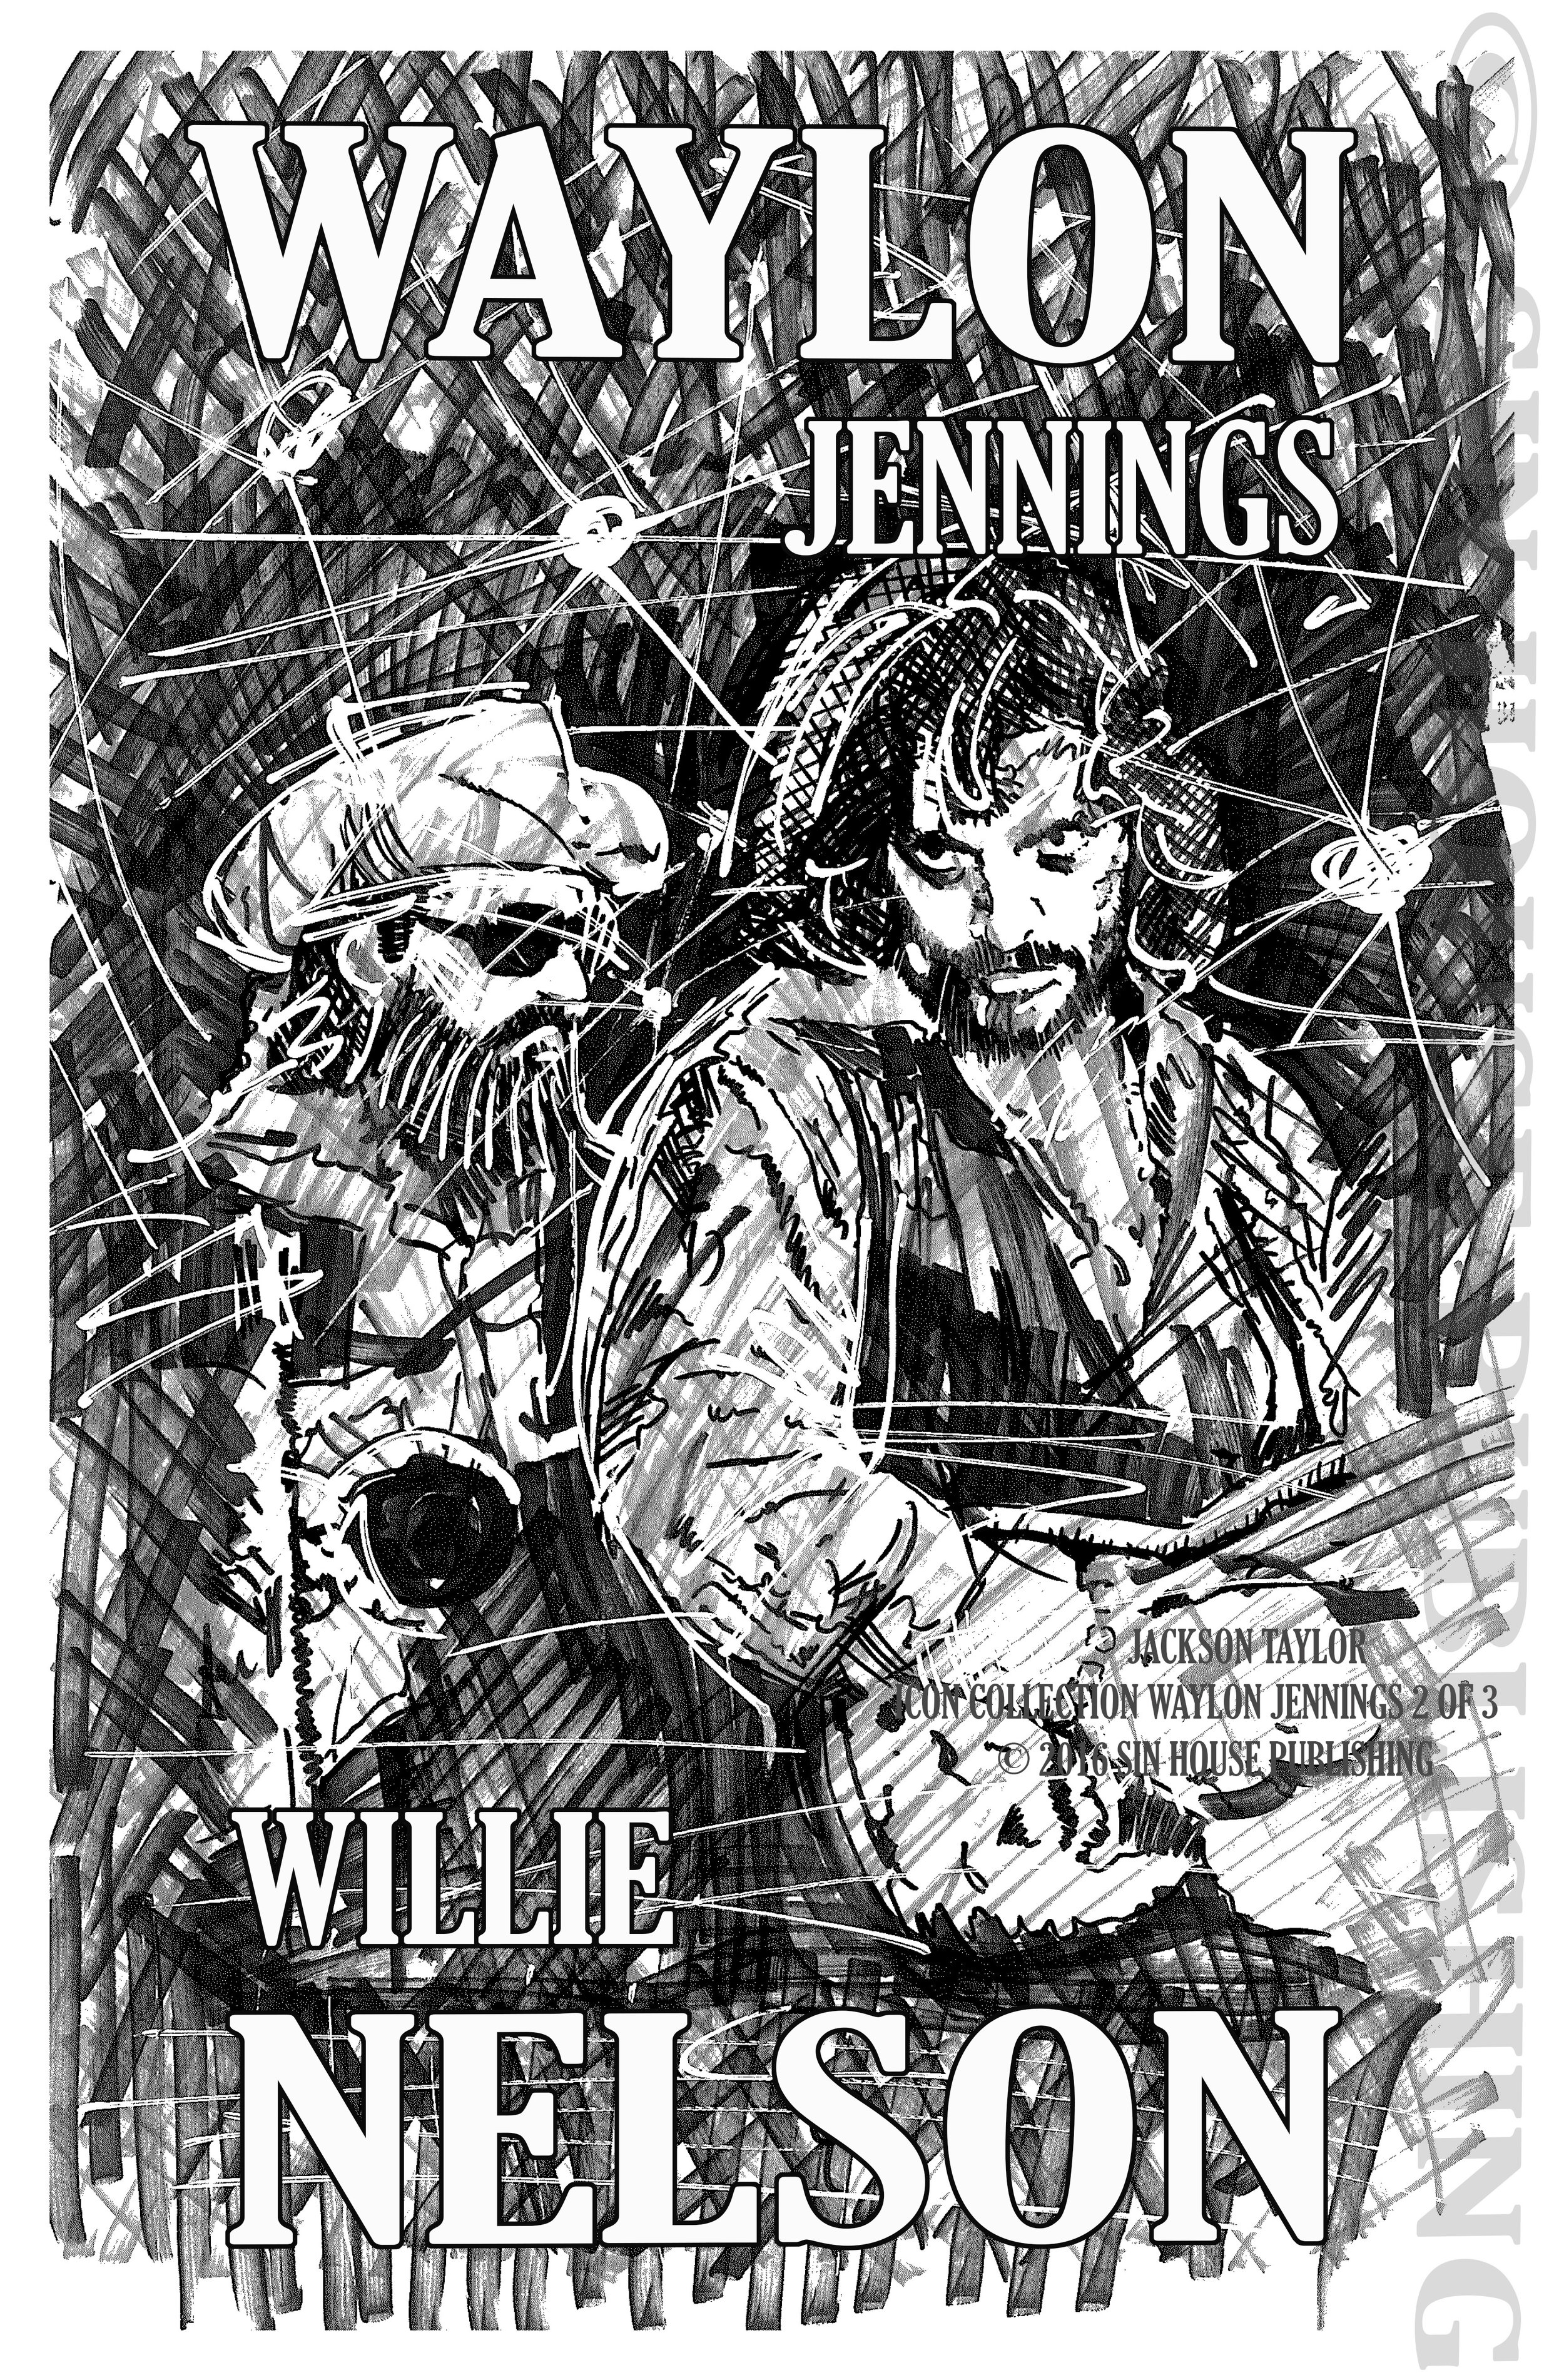 Waylon & Willie WM.jpg